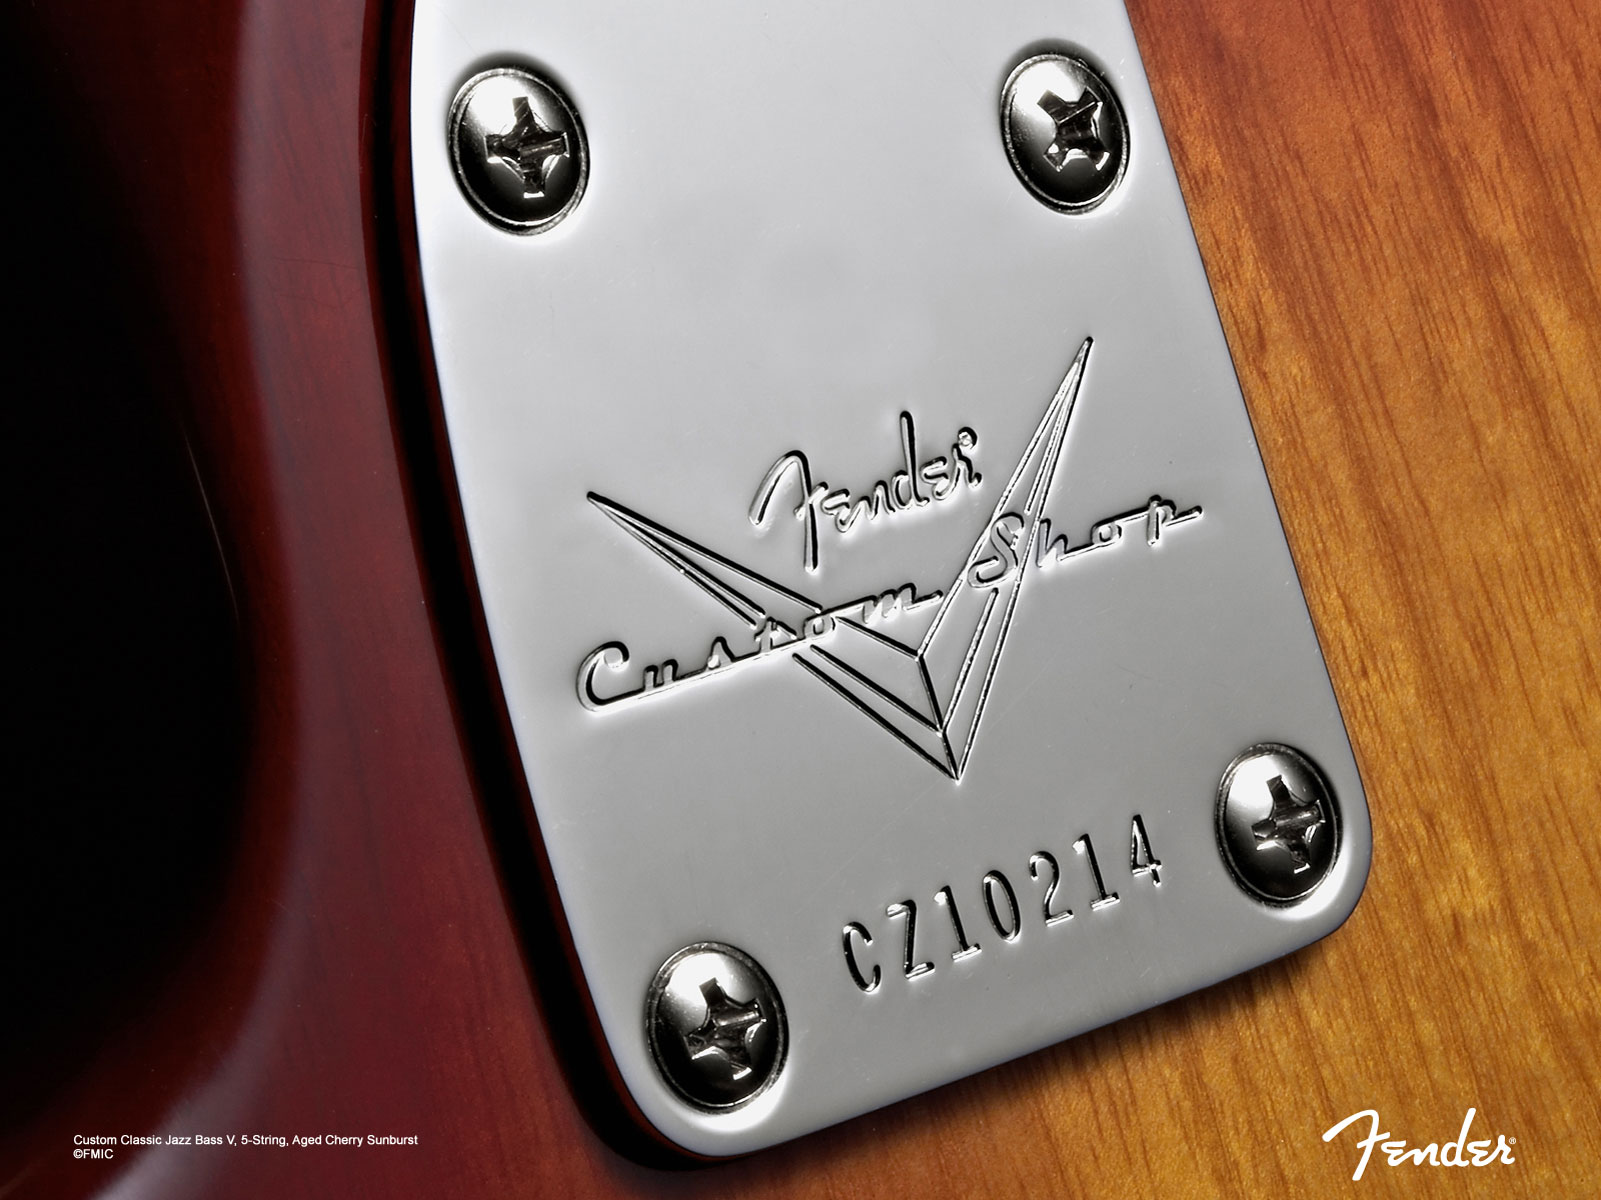 Fender Custom shop wallpaper by cmdry72 1601x1200